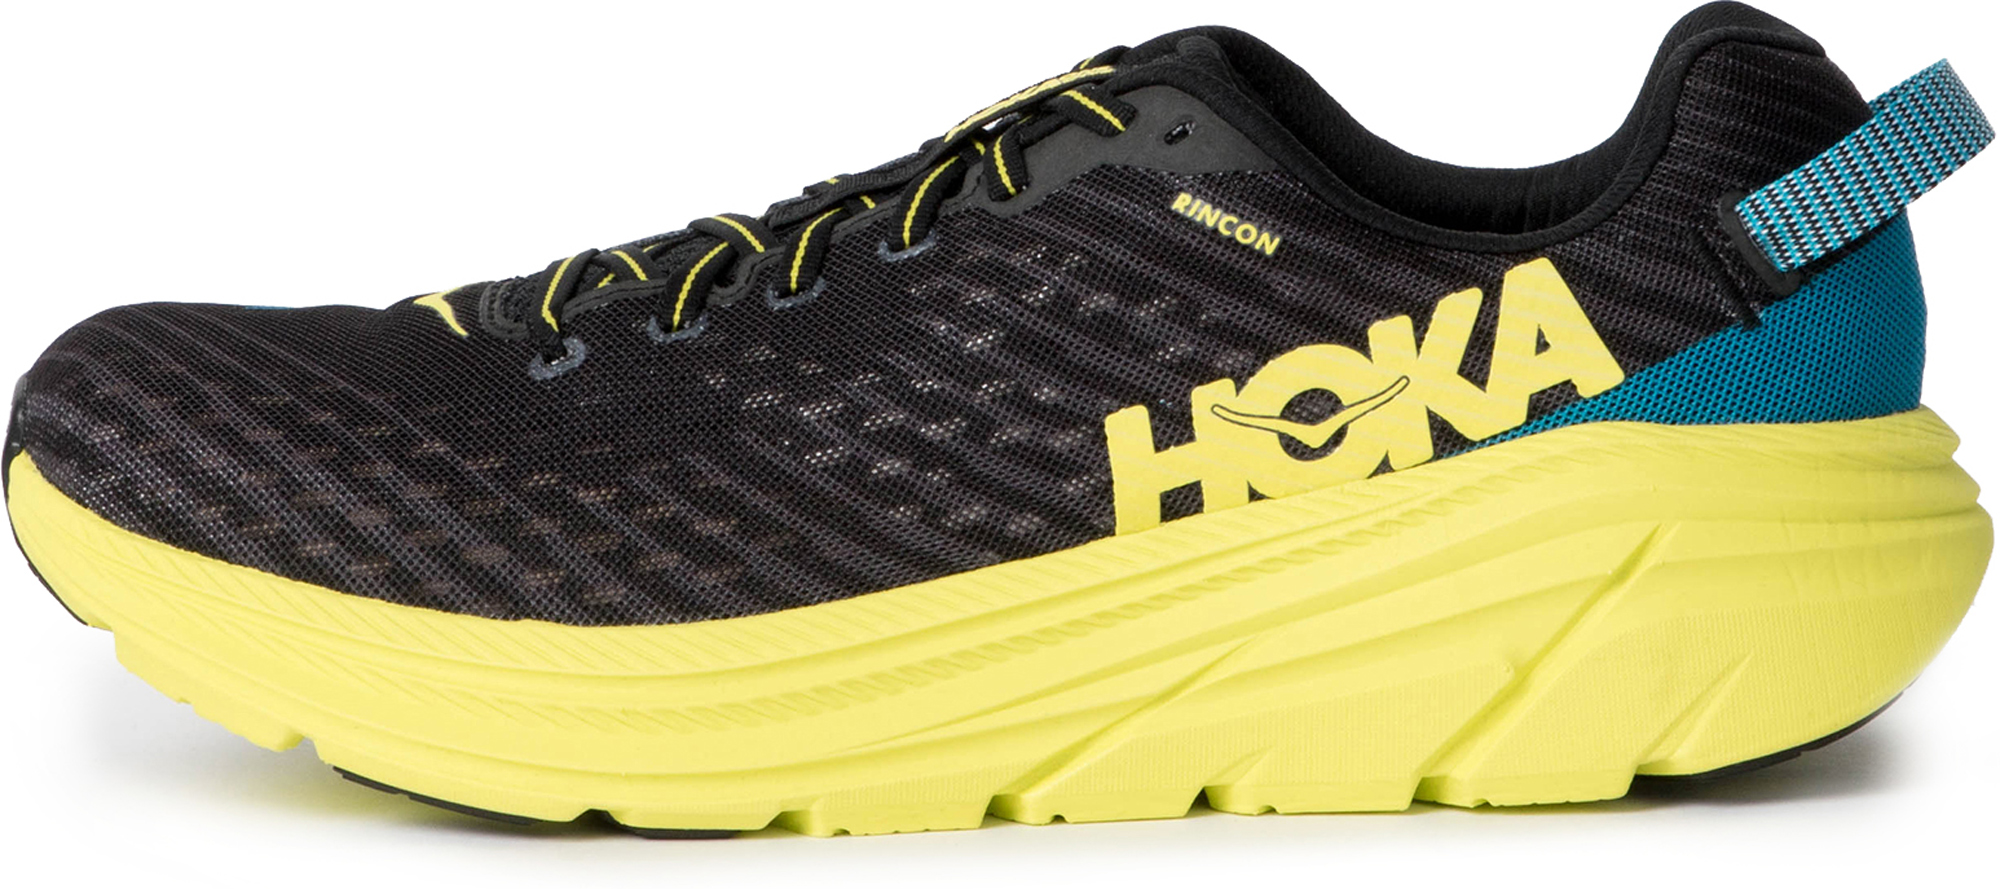 HOKA ONE ONE Кроссовки мужские HOKA ONE ONE Rincon, размер 45 hoka one one women s w conquest running shoe